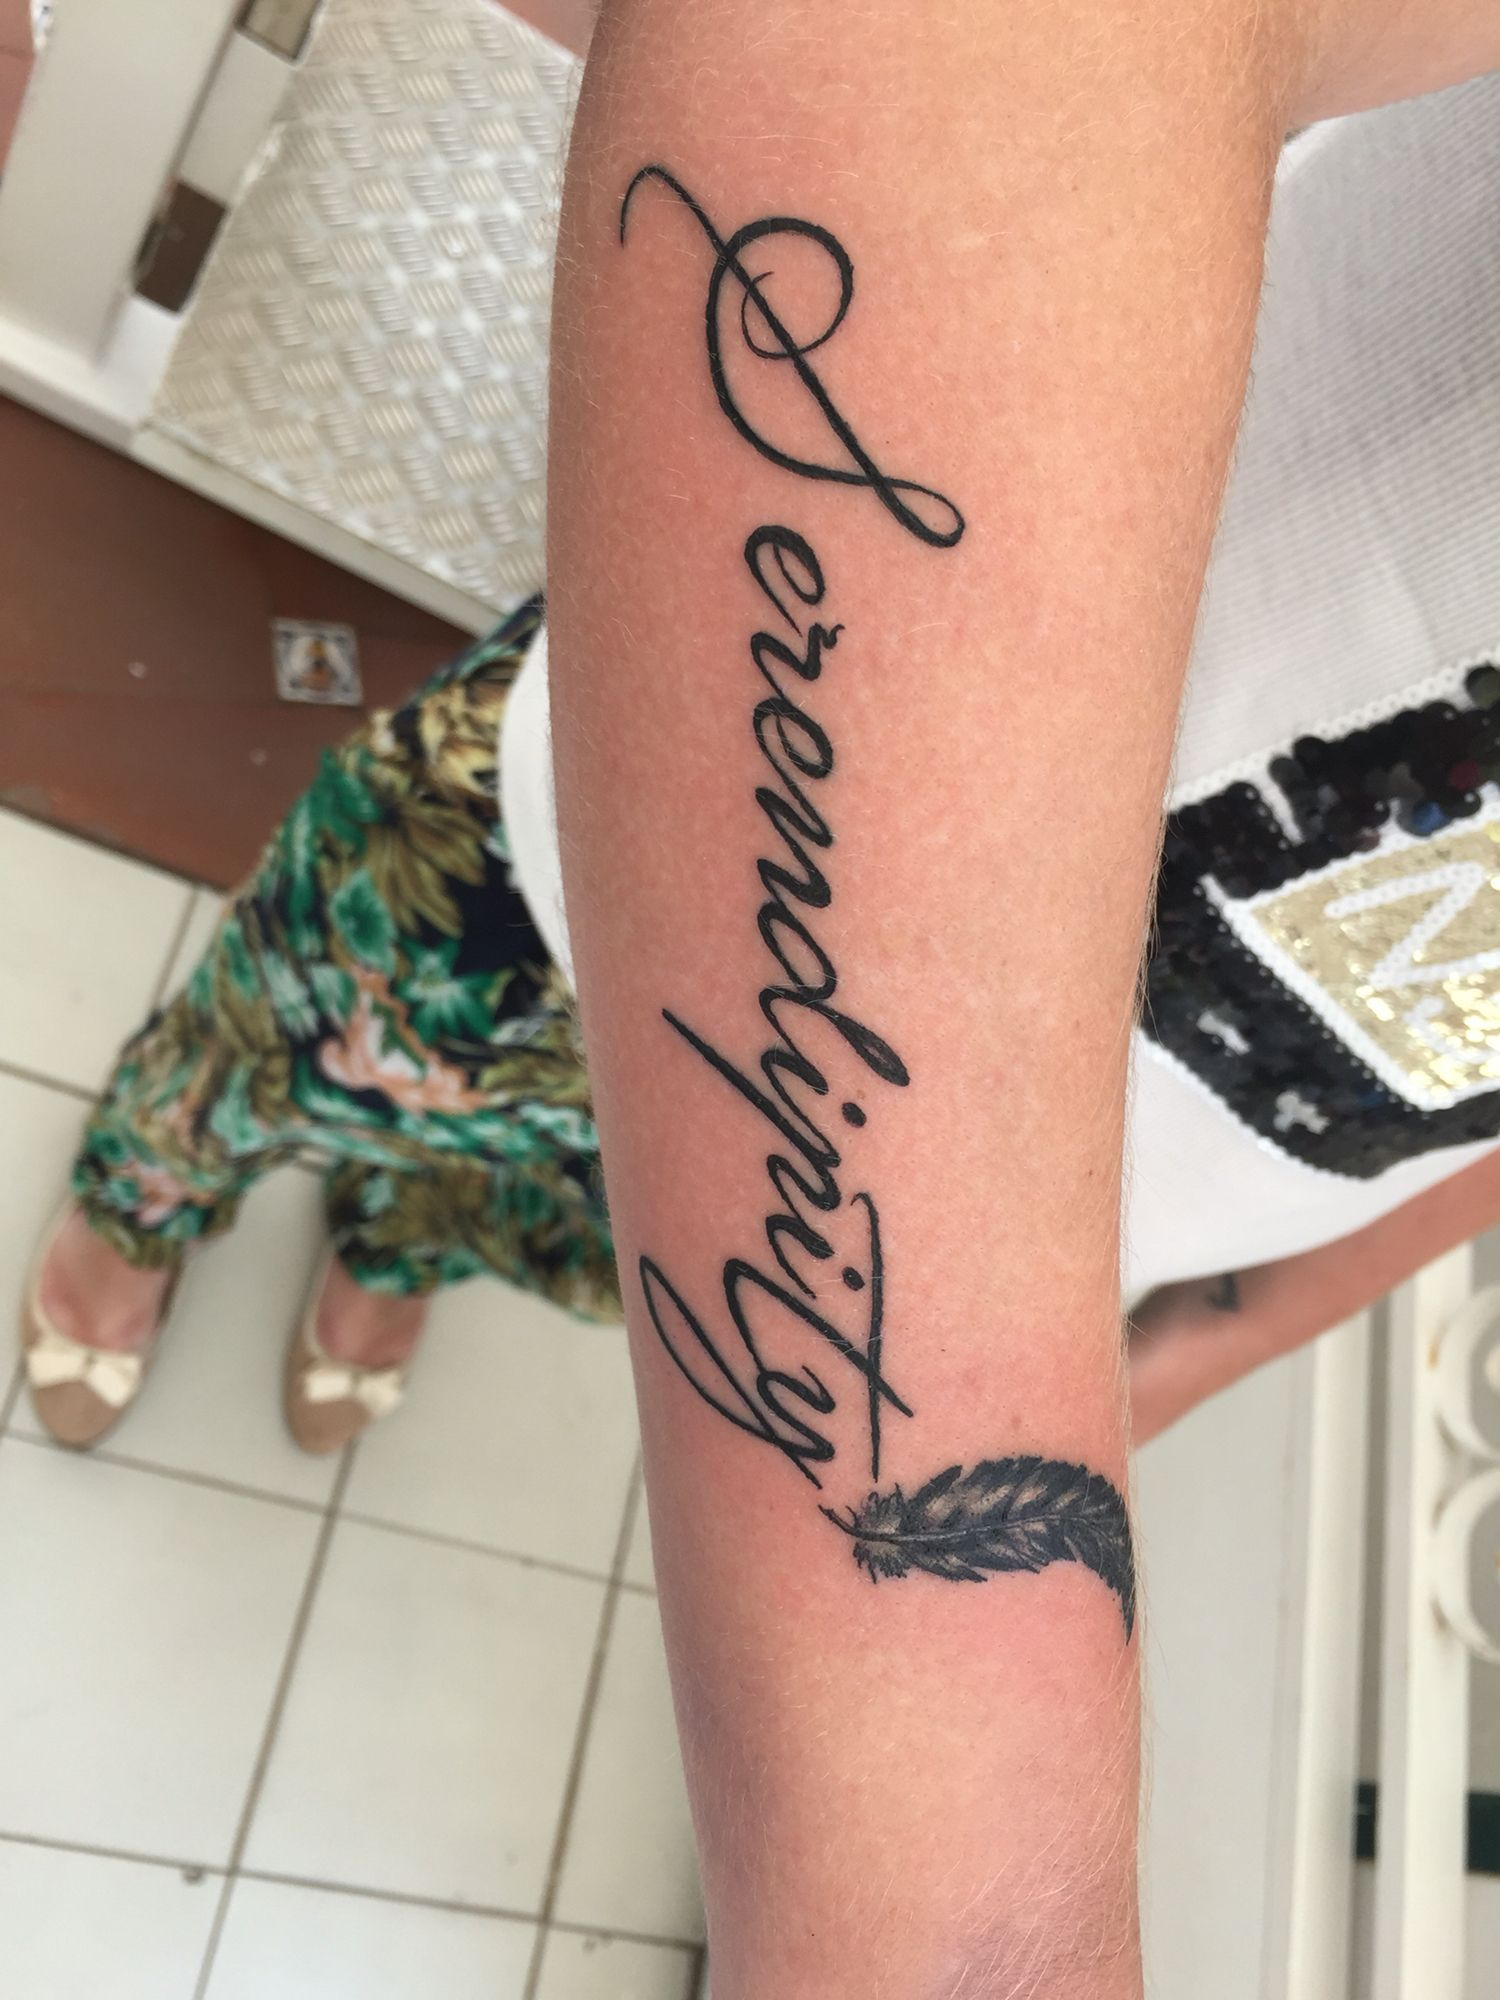 serendipity 39 tattoo writing for girls female forearm tattoo writing tattoo ideas by tears of. Black Bedroom Furniture Sets. Home Design Ideas